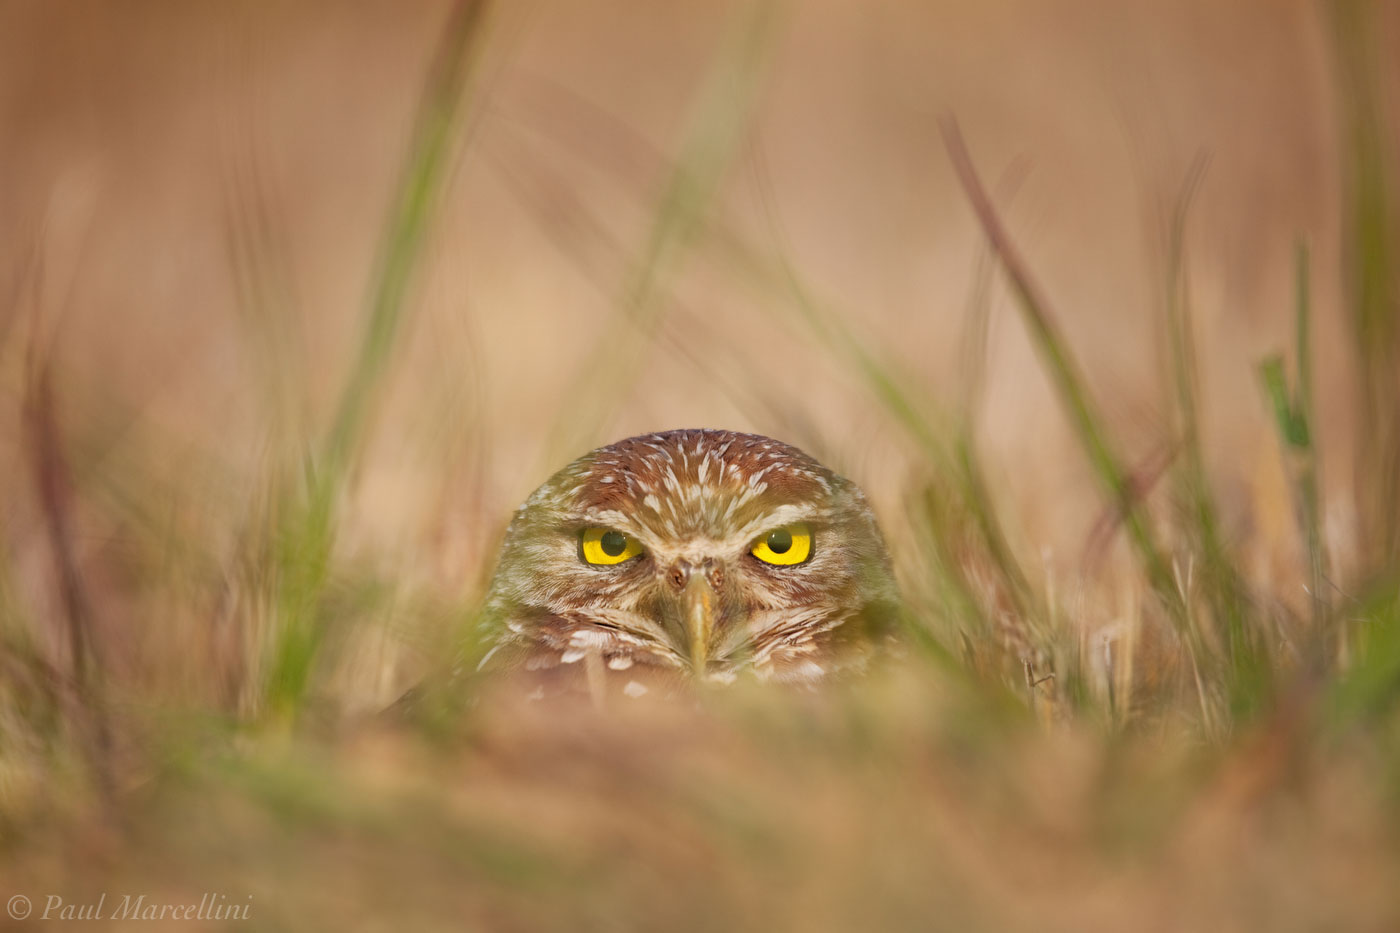 Burrowing Owl, Athene cunicularia, owl, photo